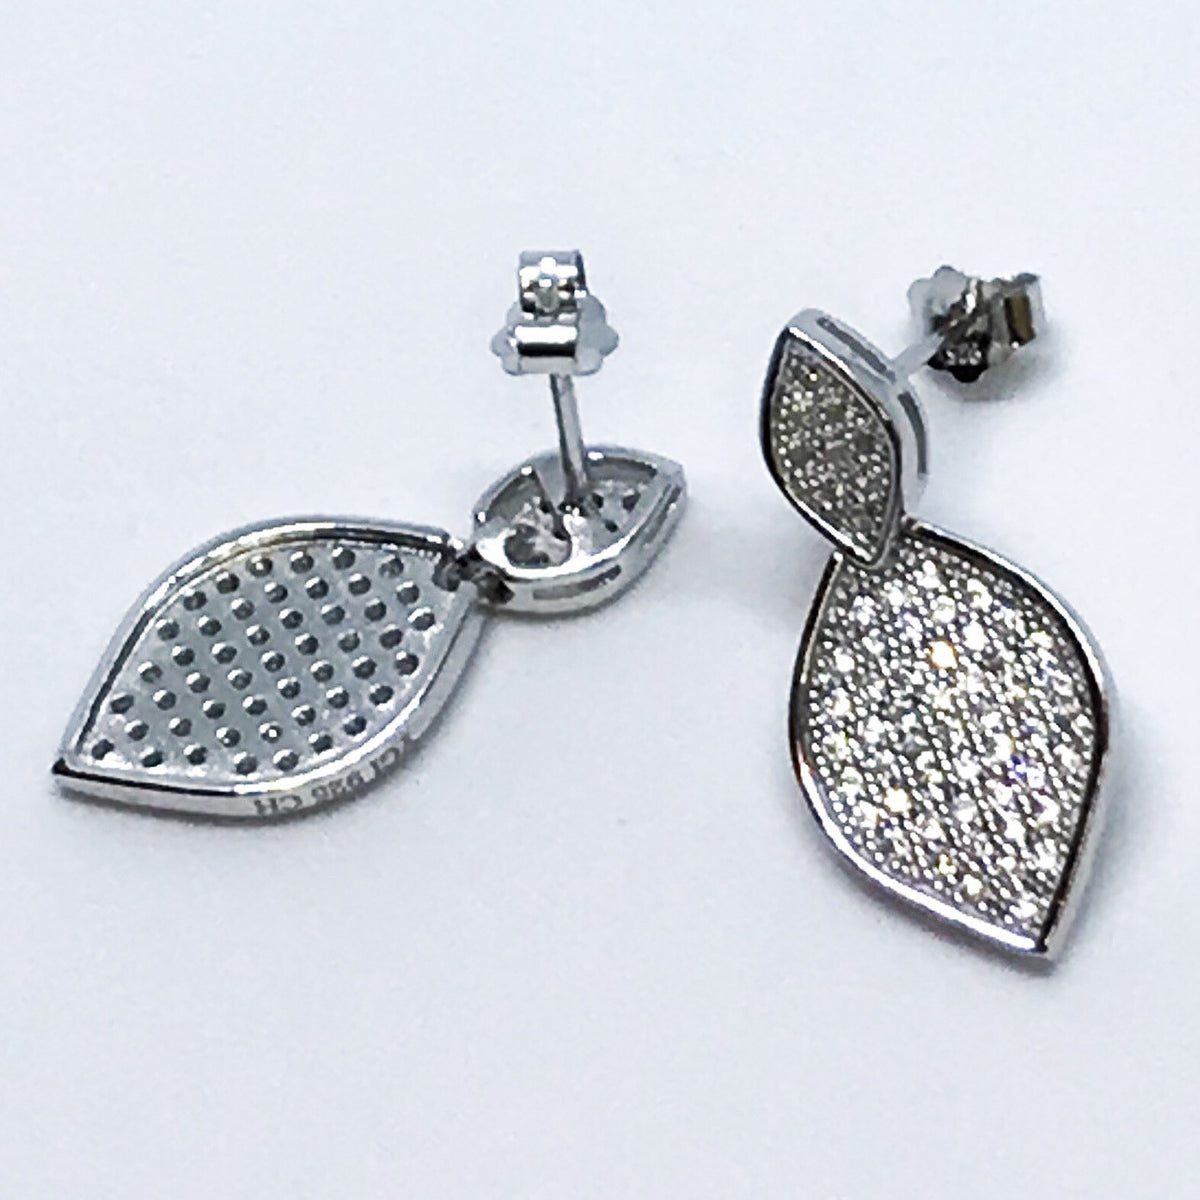 14K White Gold Layered on Sterling Silver Leaf Earrings - 3 Royal Dazzy